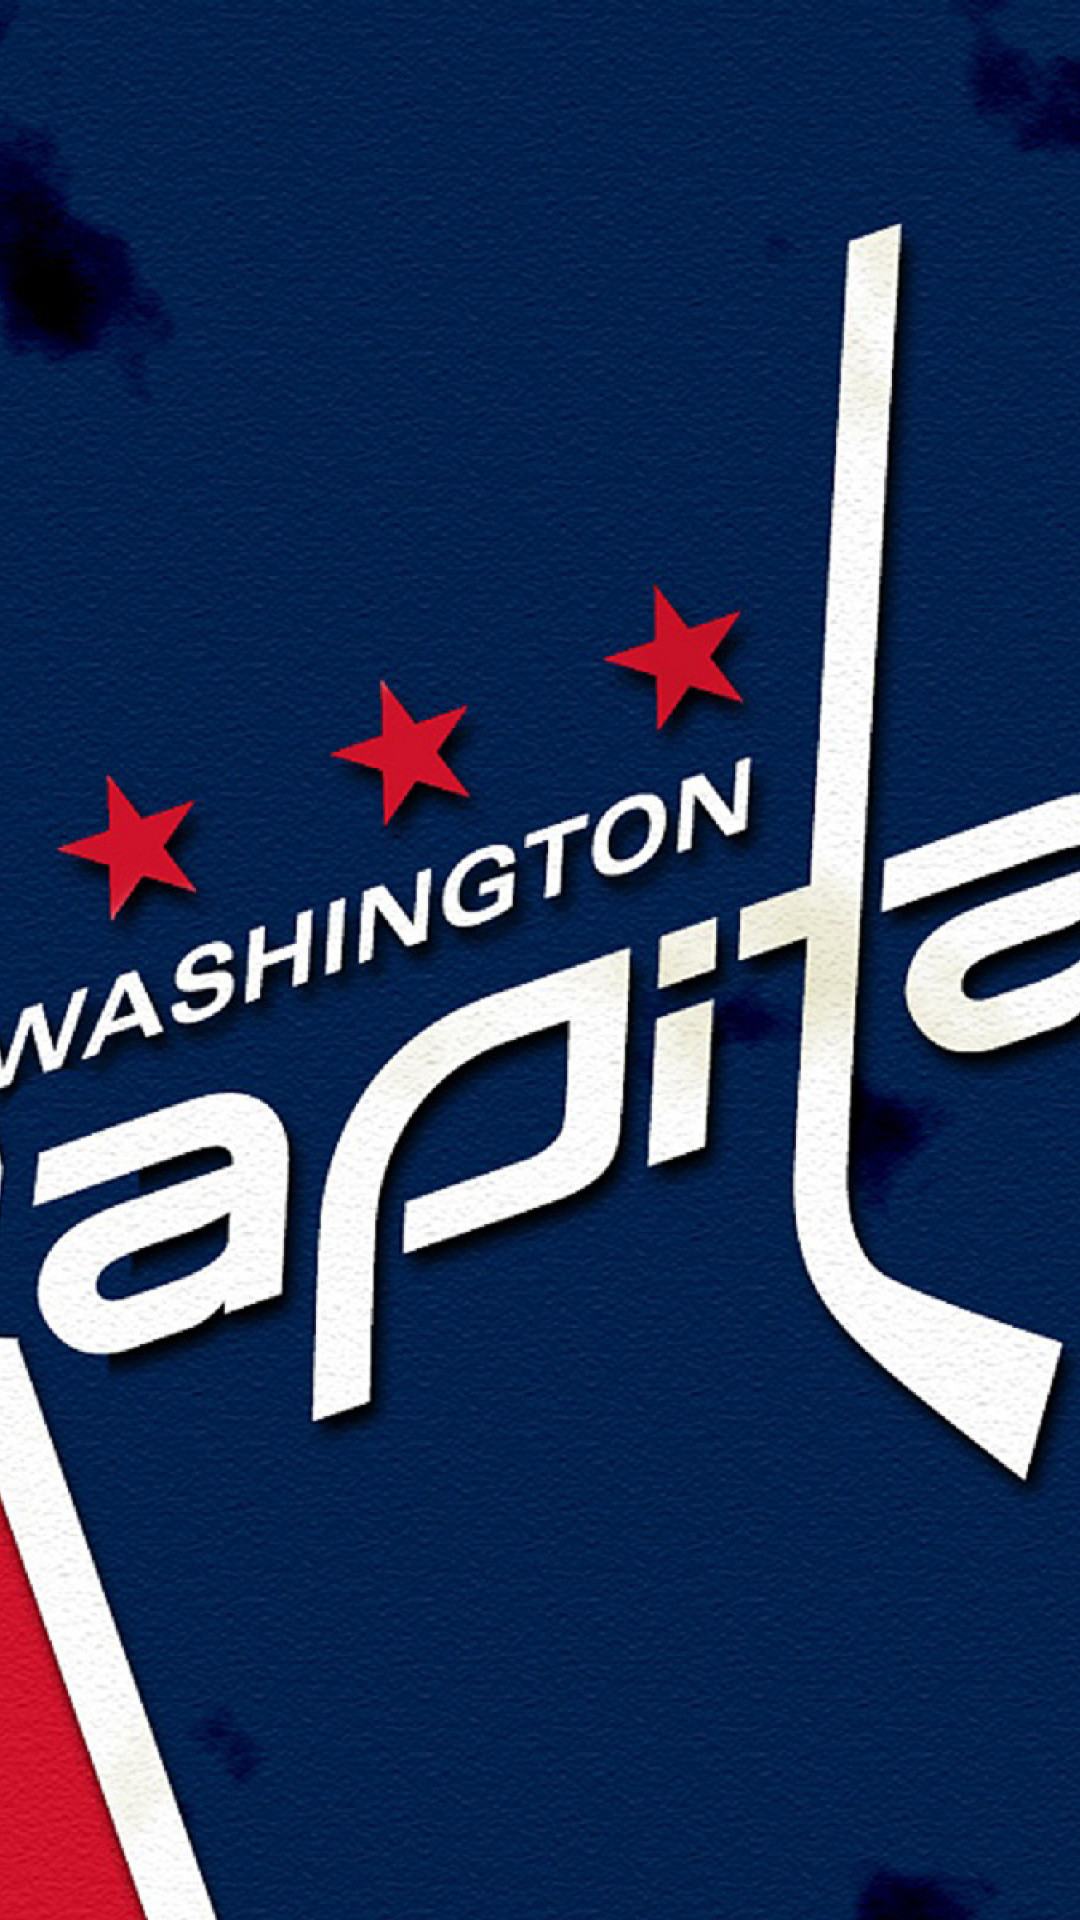 1080x1920 Washington Capitals NHL Wallpaper for iPhone 6 Plus